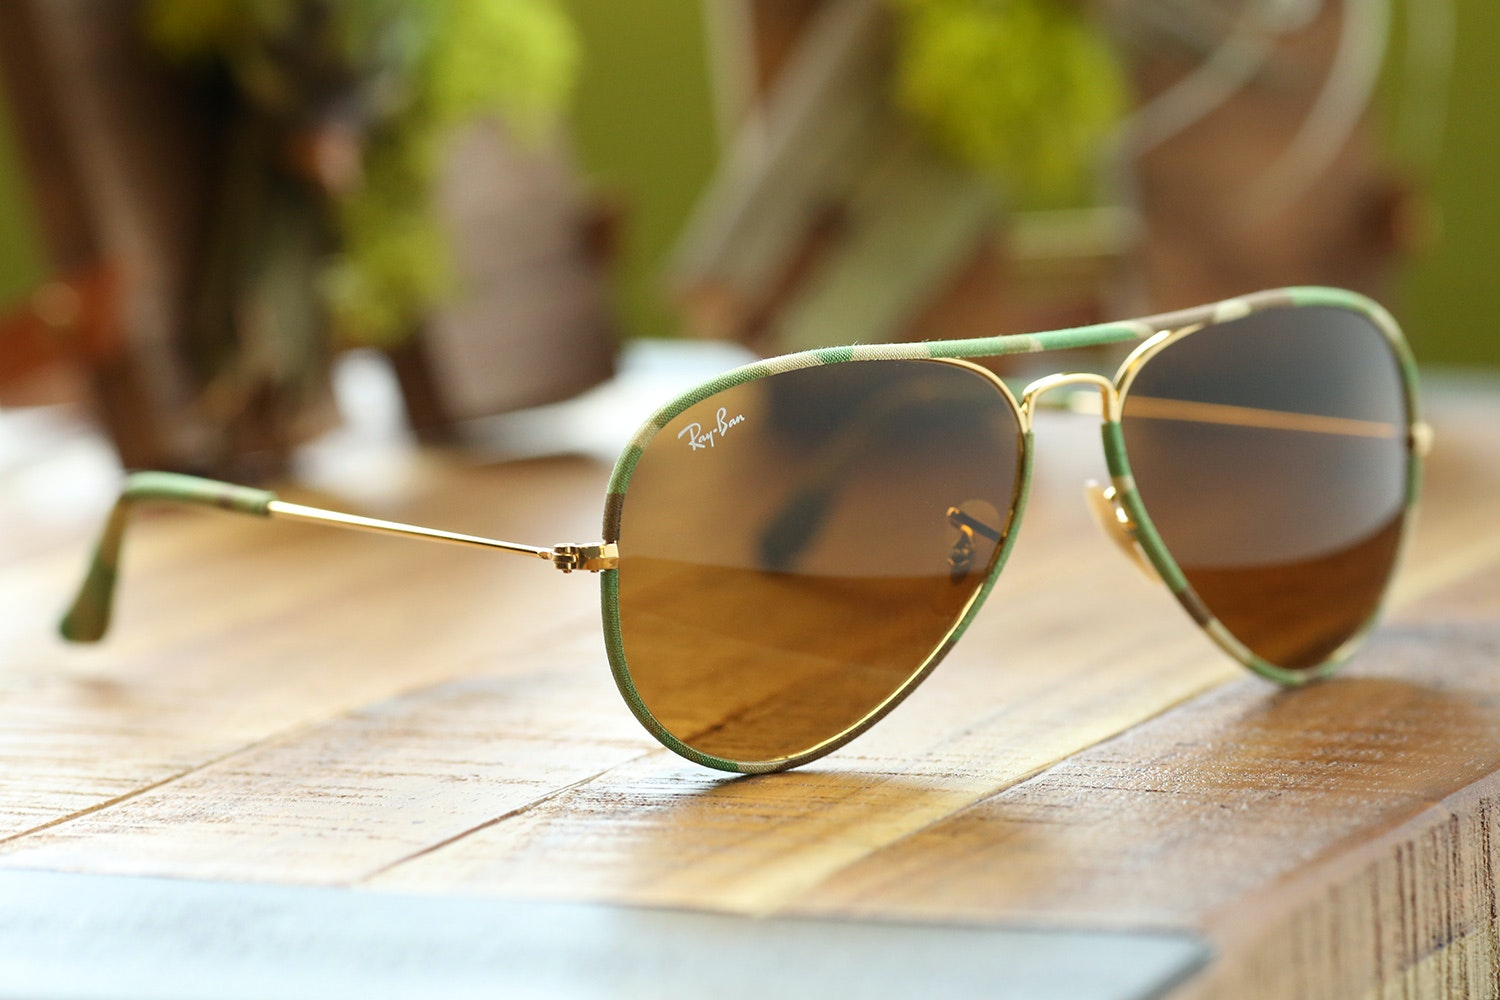 Best Price For Ray Ban Aviator Sunglasses 2017